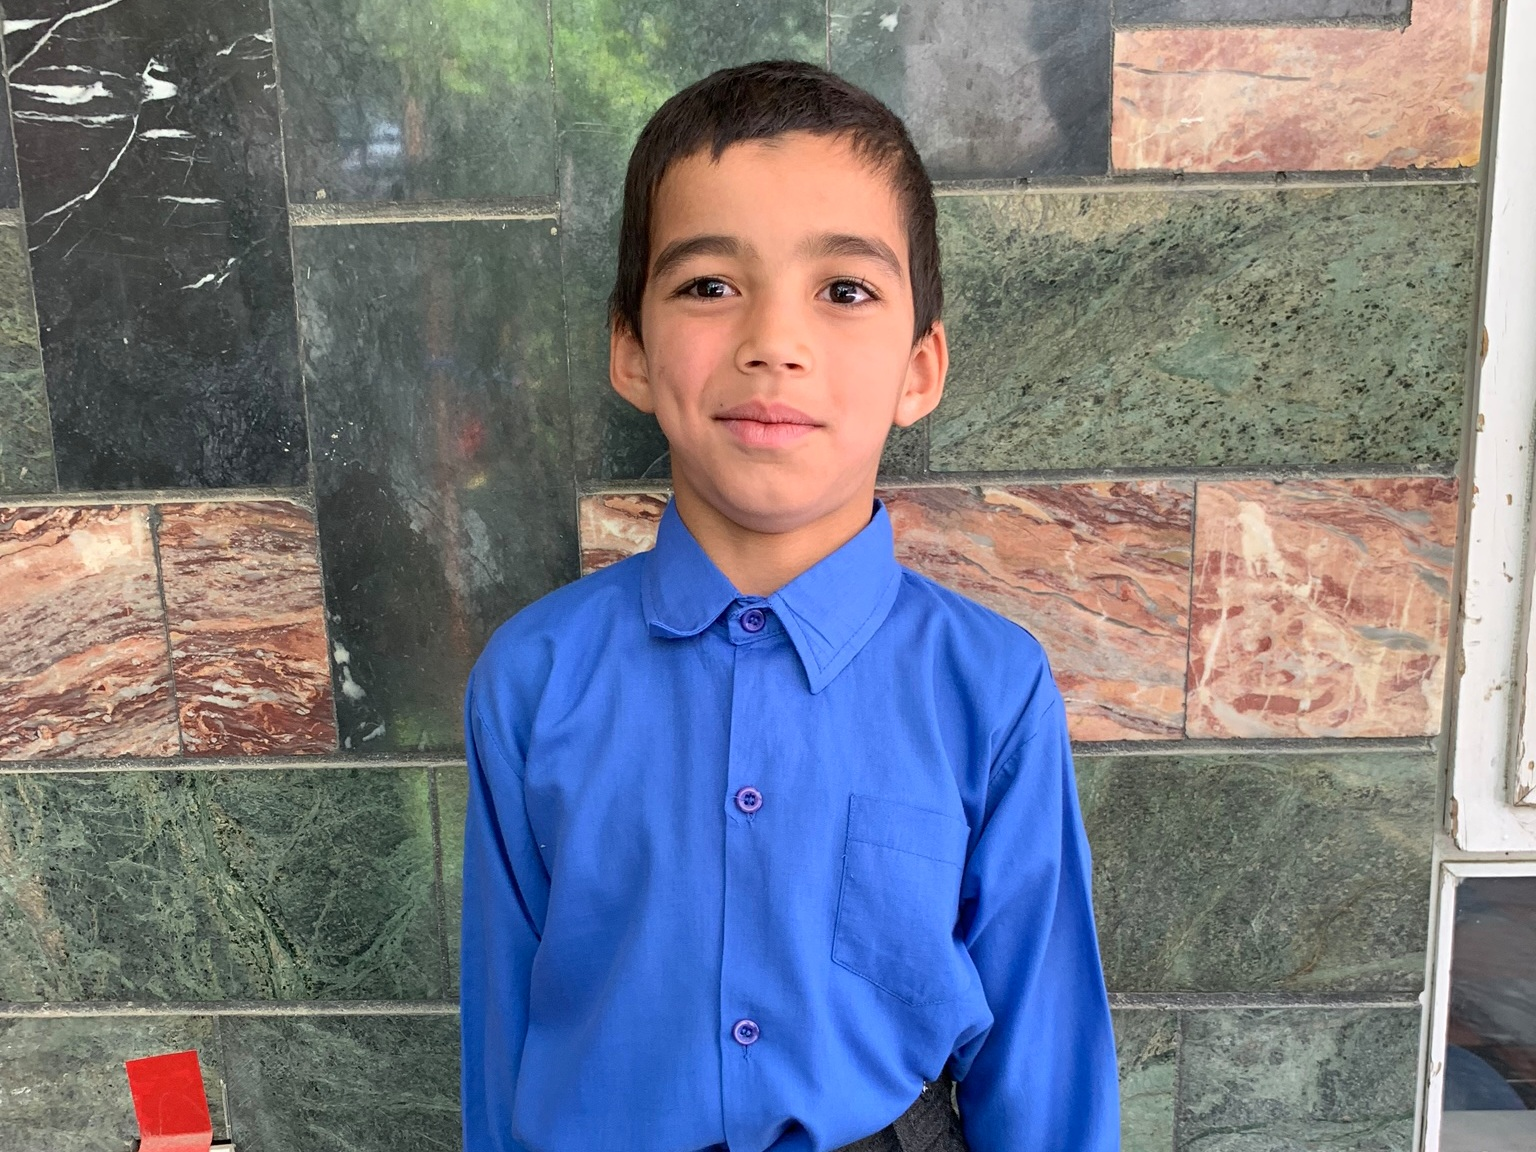 Sheirzaid, Age 7 - Sheirzaid has 4 siblings. His mother is currently unemployed. His father is a cook.BE SHEIRZAID'S PARTNER >